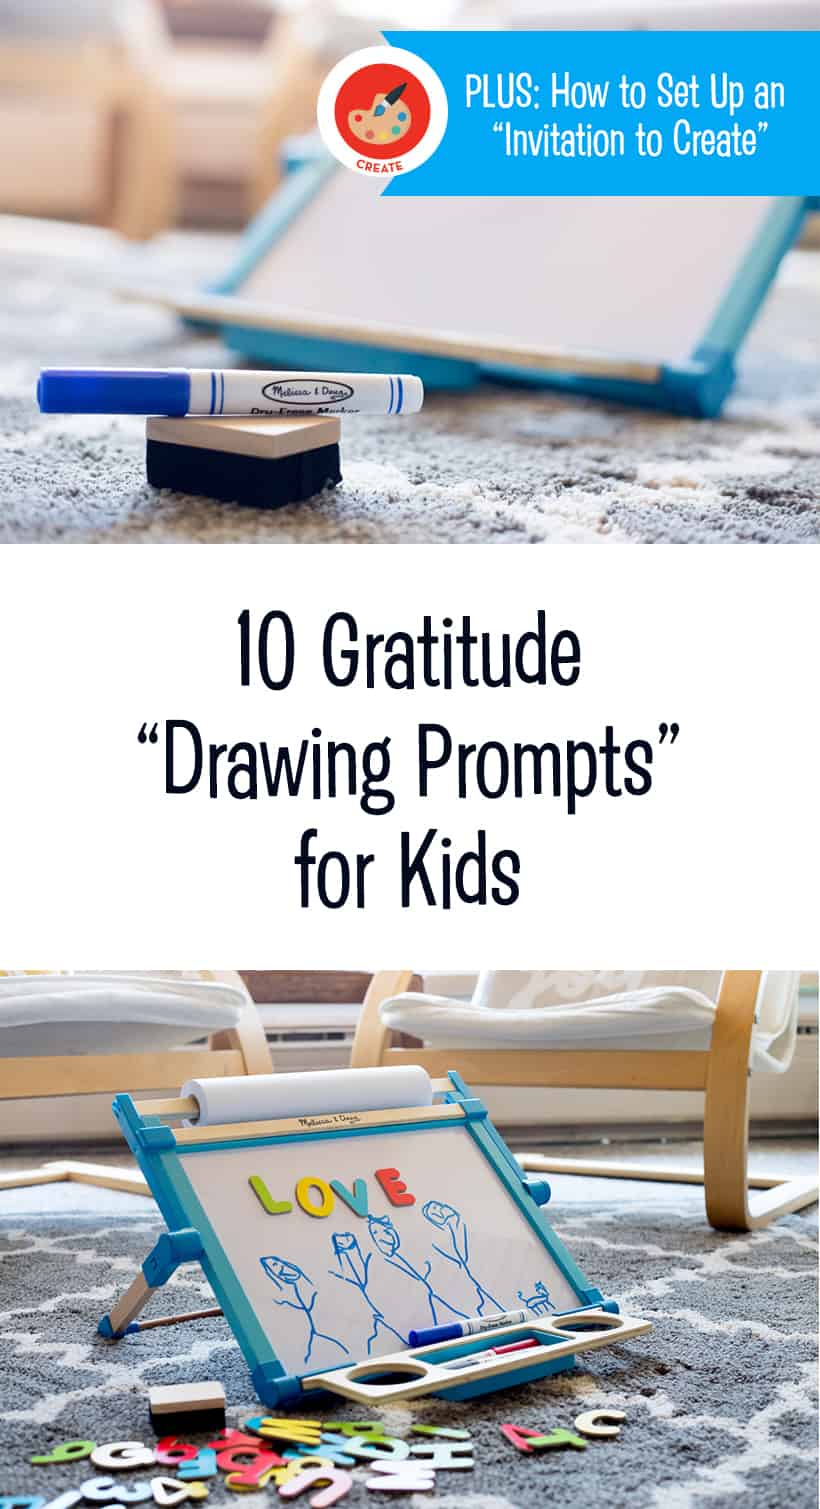 10 Gratitude Drawing Prompts Thanksgiving Art Activity For Kids